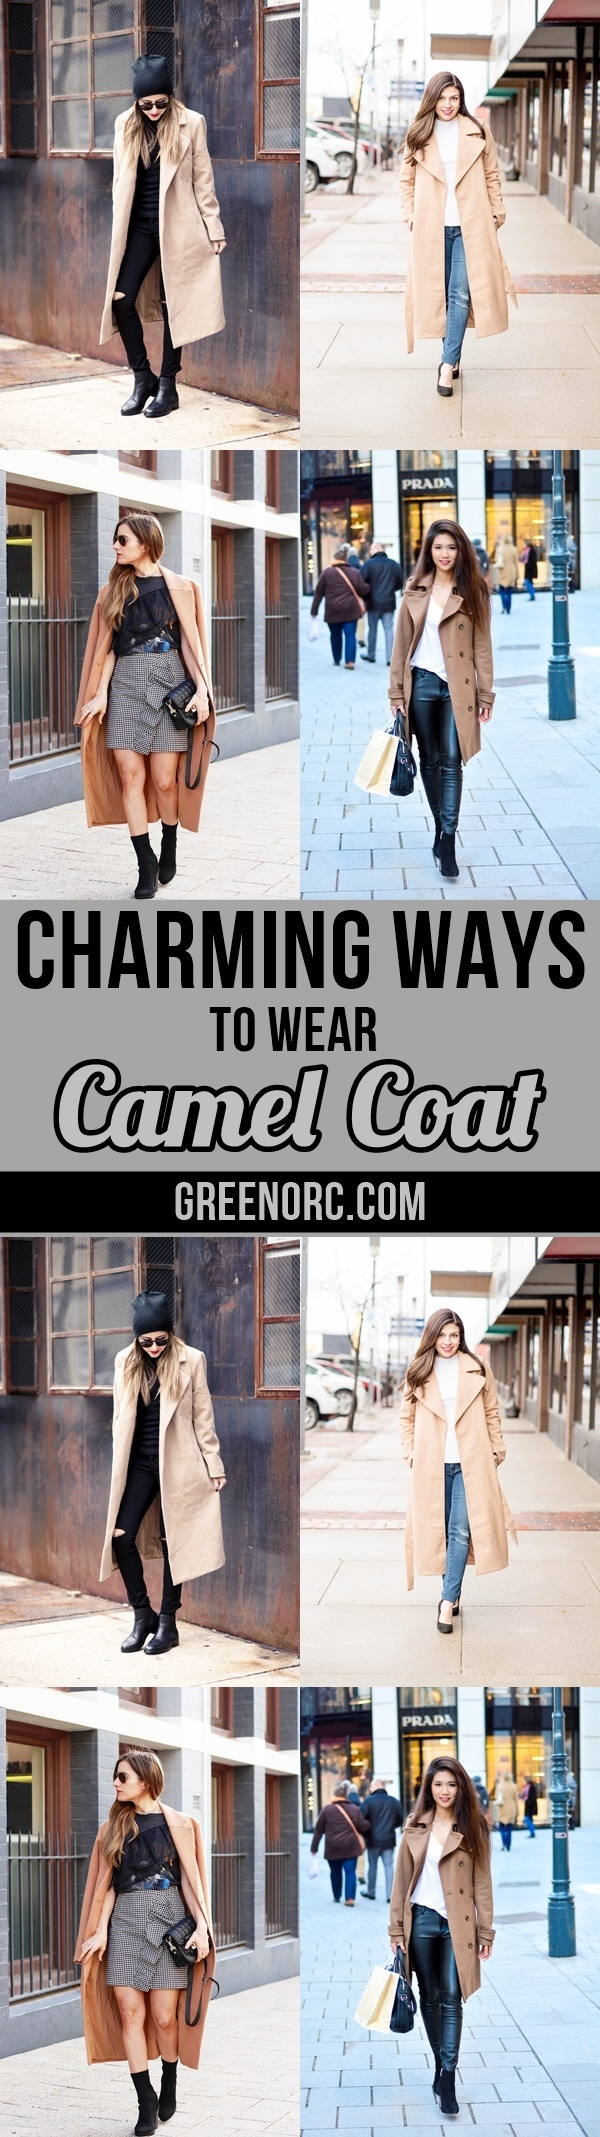 Charming Ways to wear Camel Coat